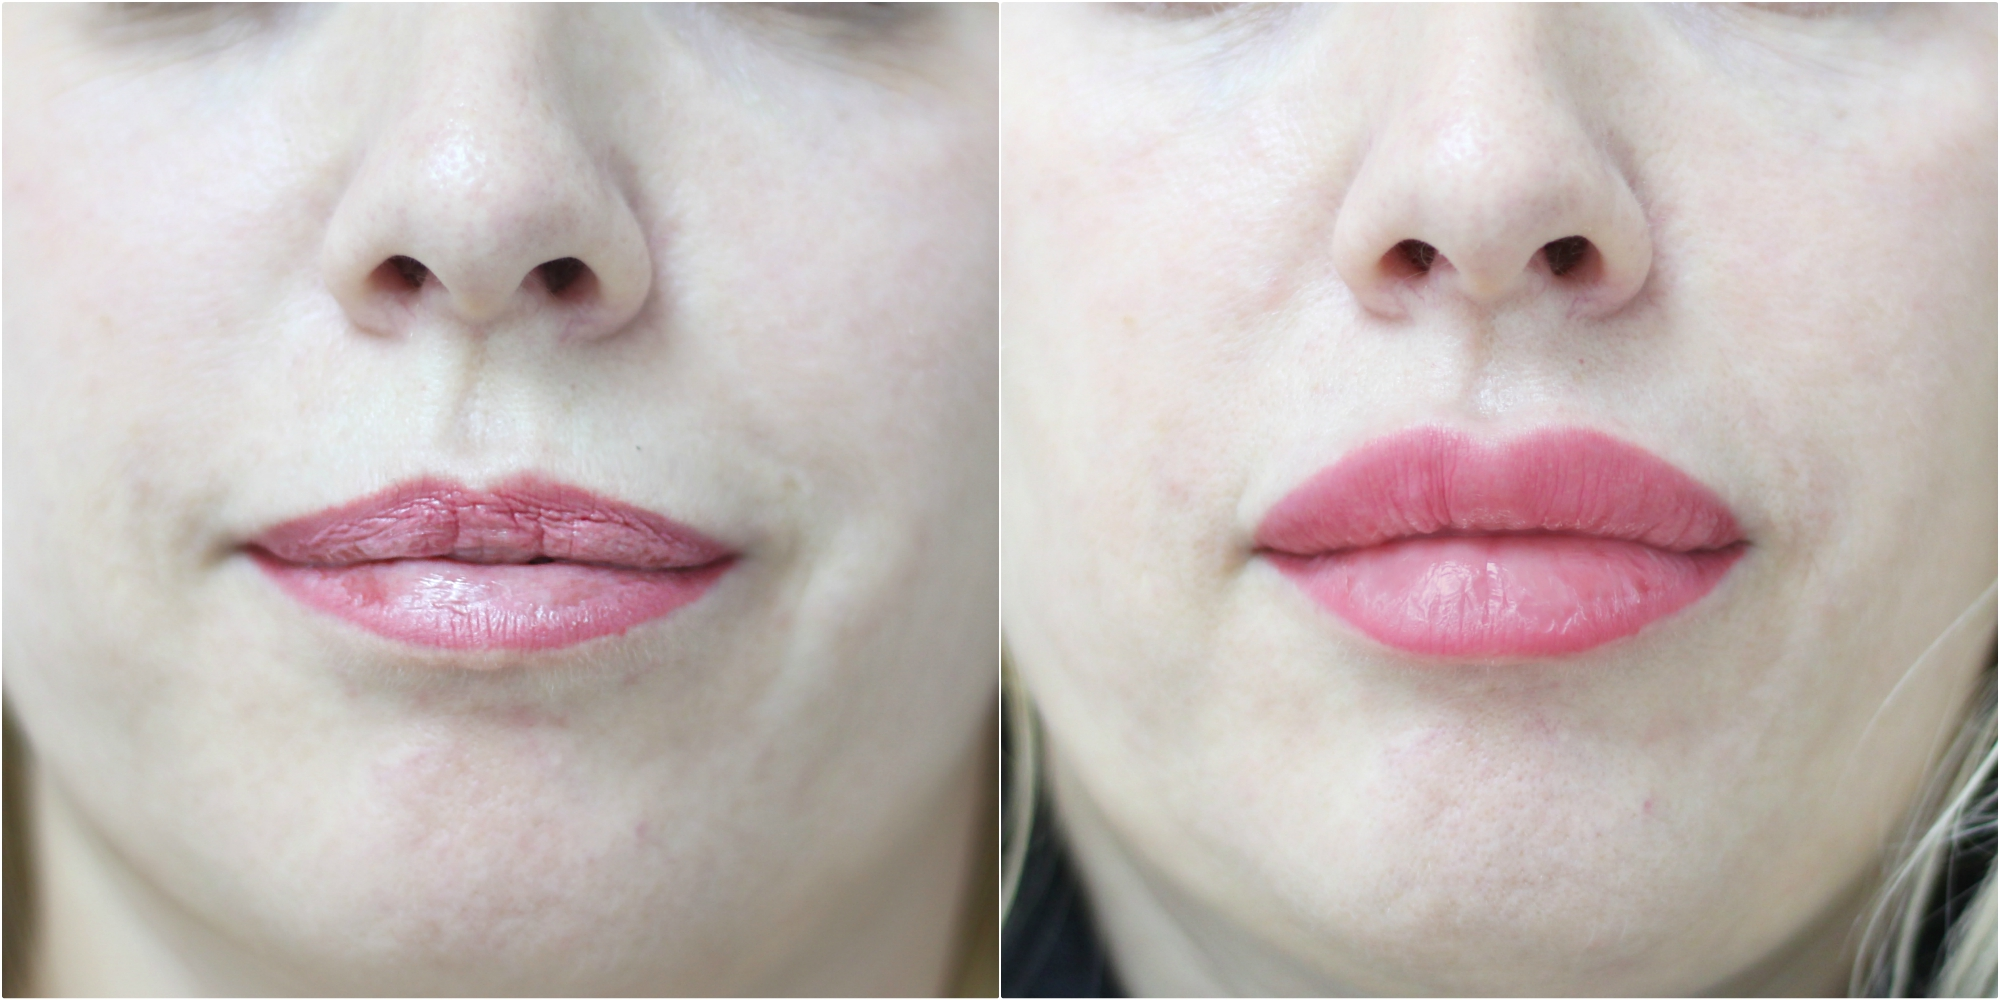 bruises appear after lip augmentation